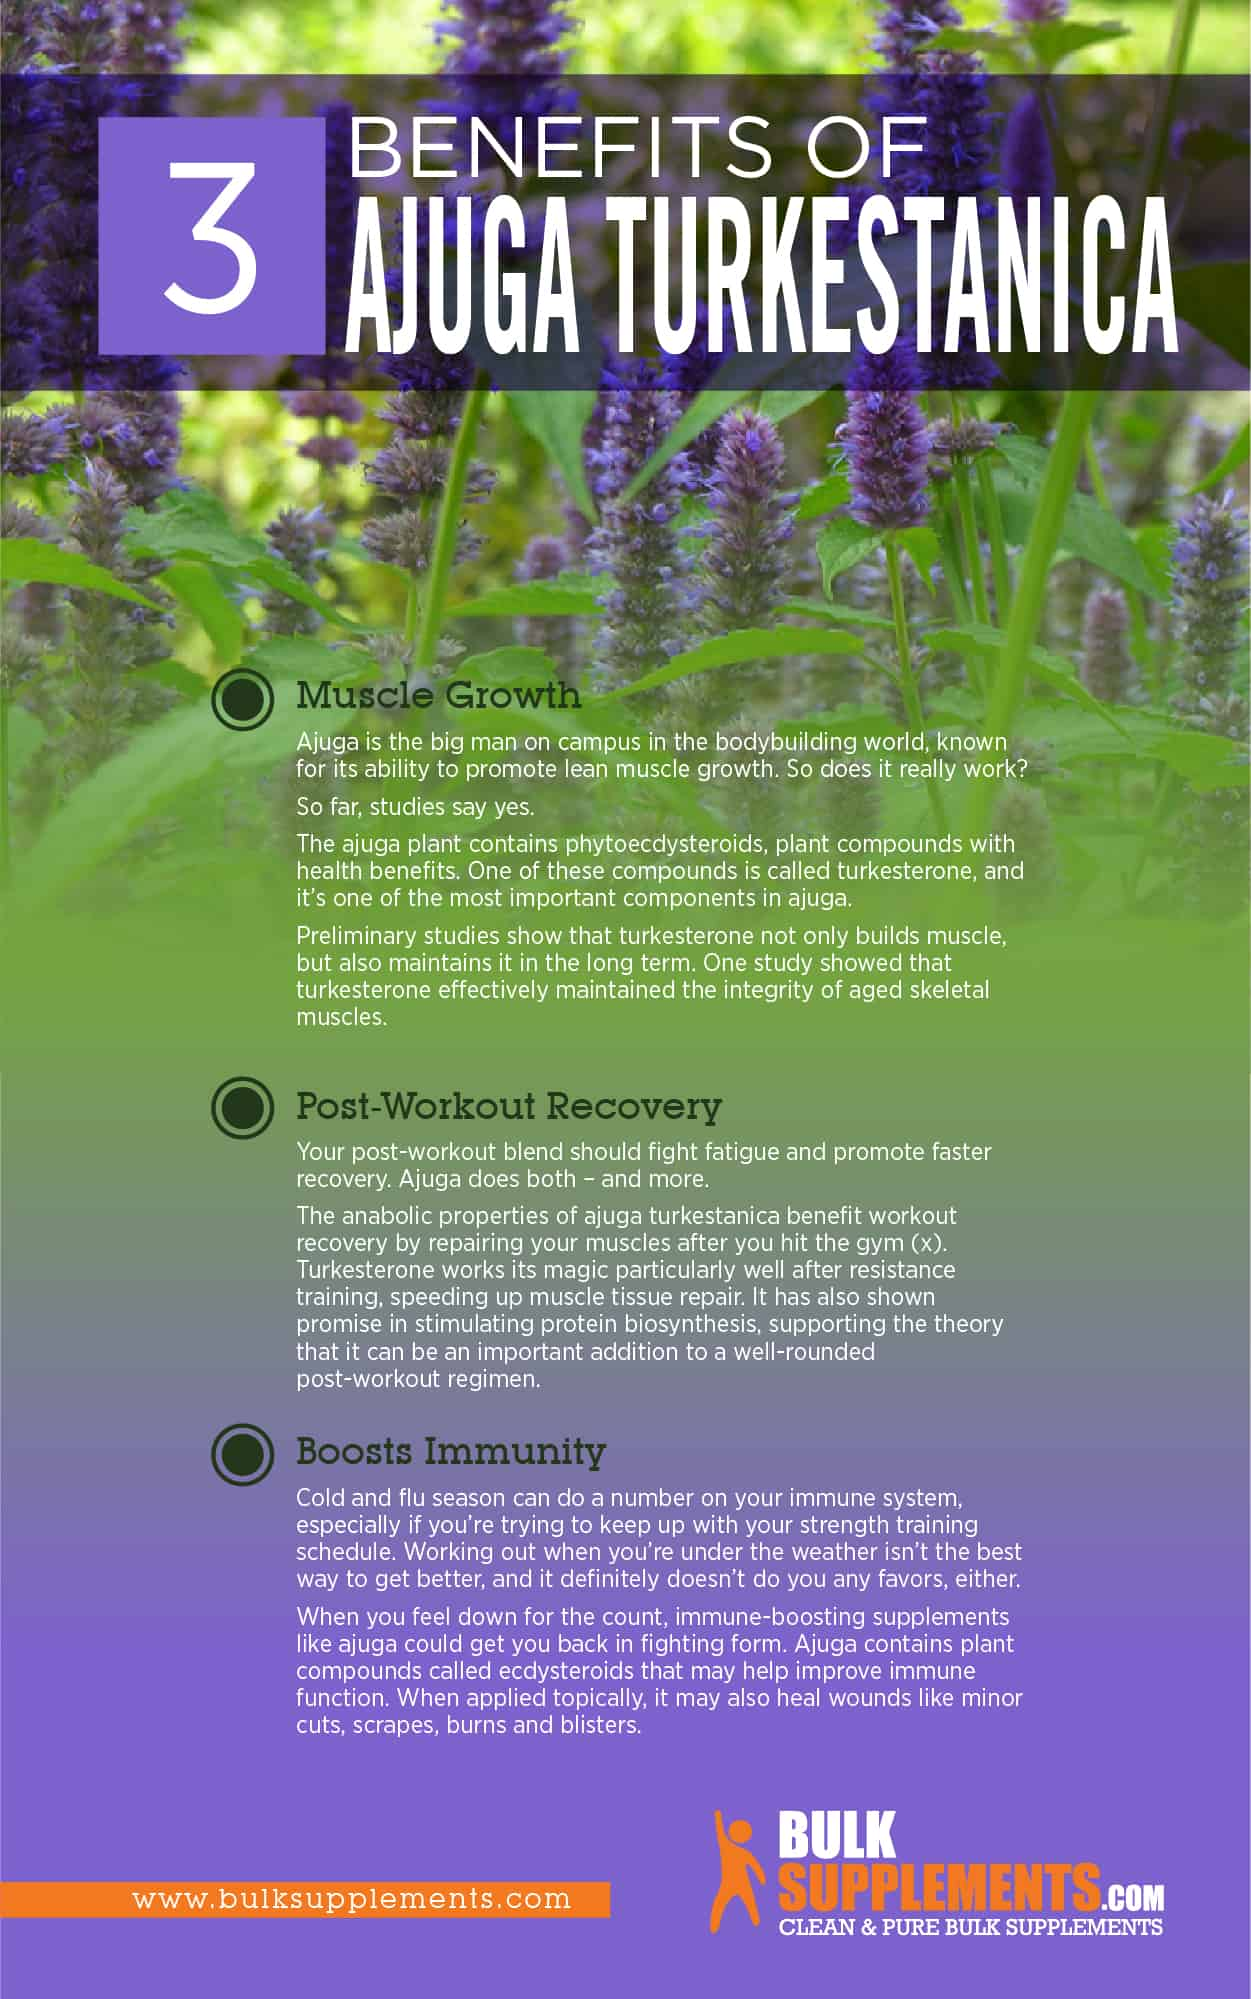 Top 4 Health Benefits of Ajuga Turkestanica